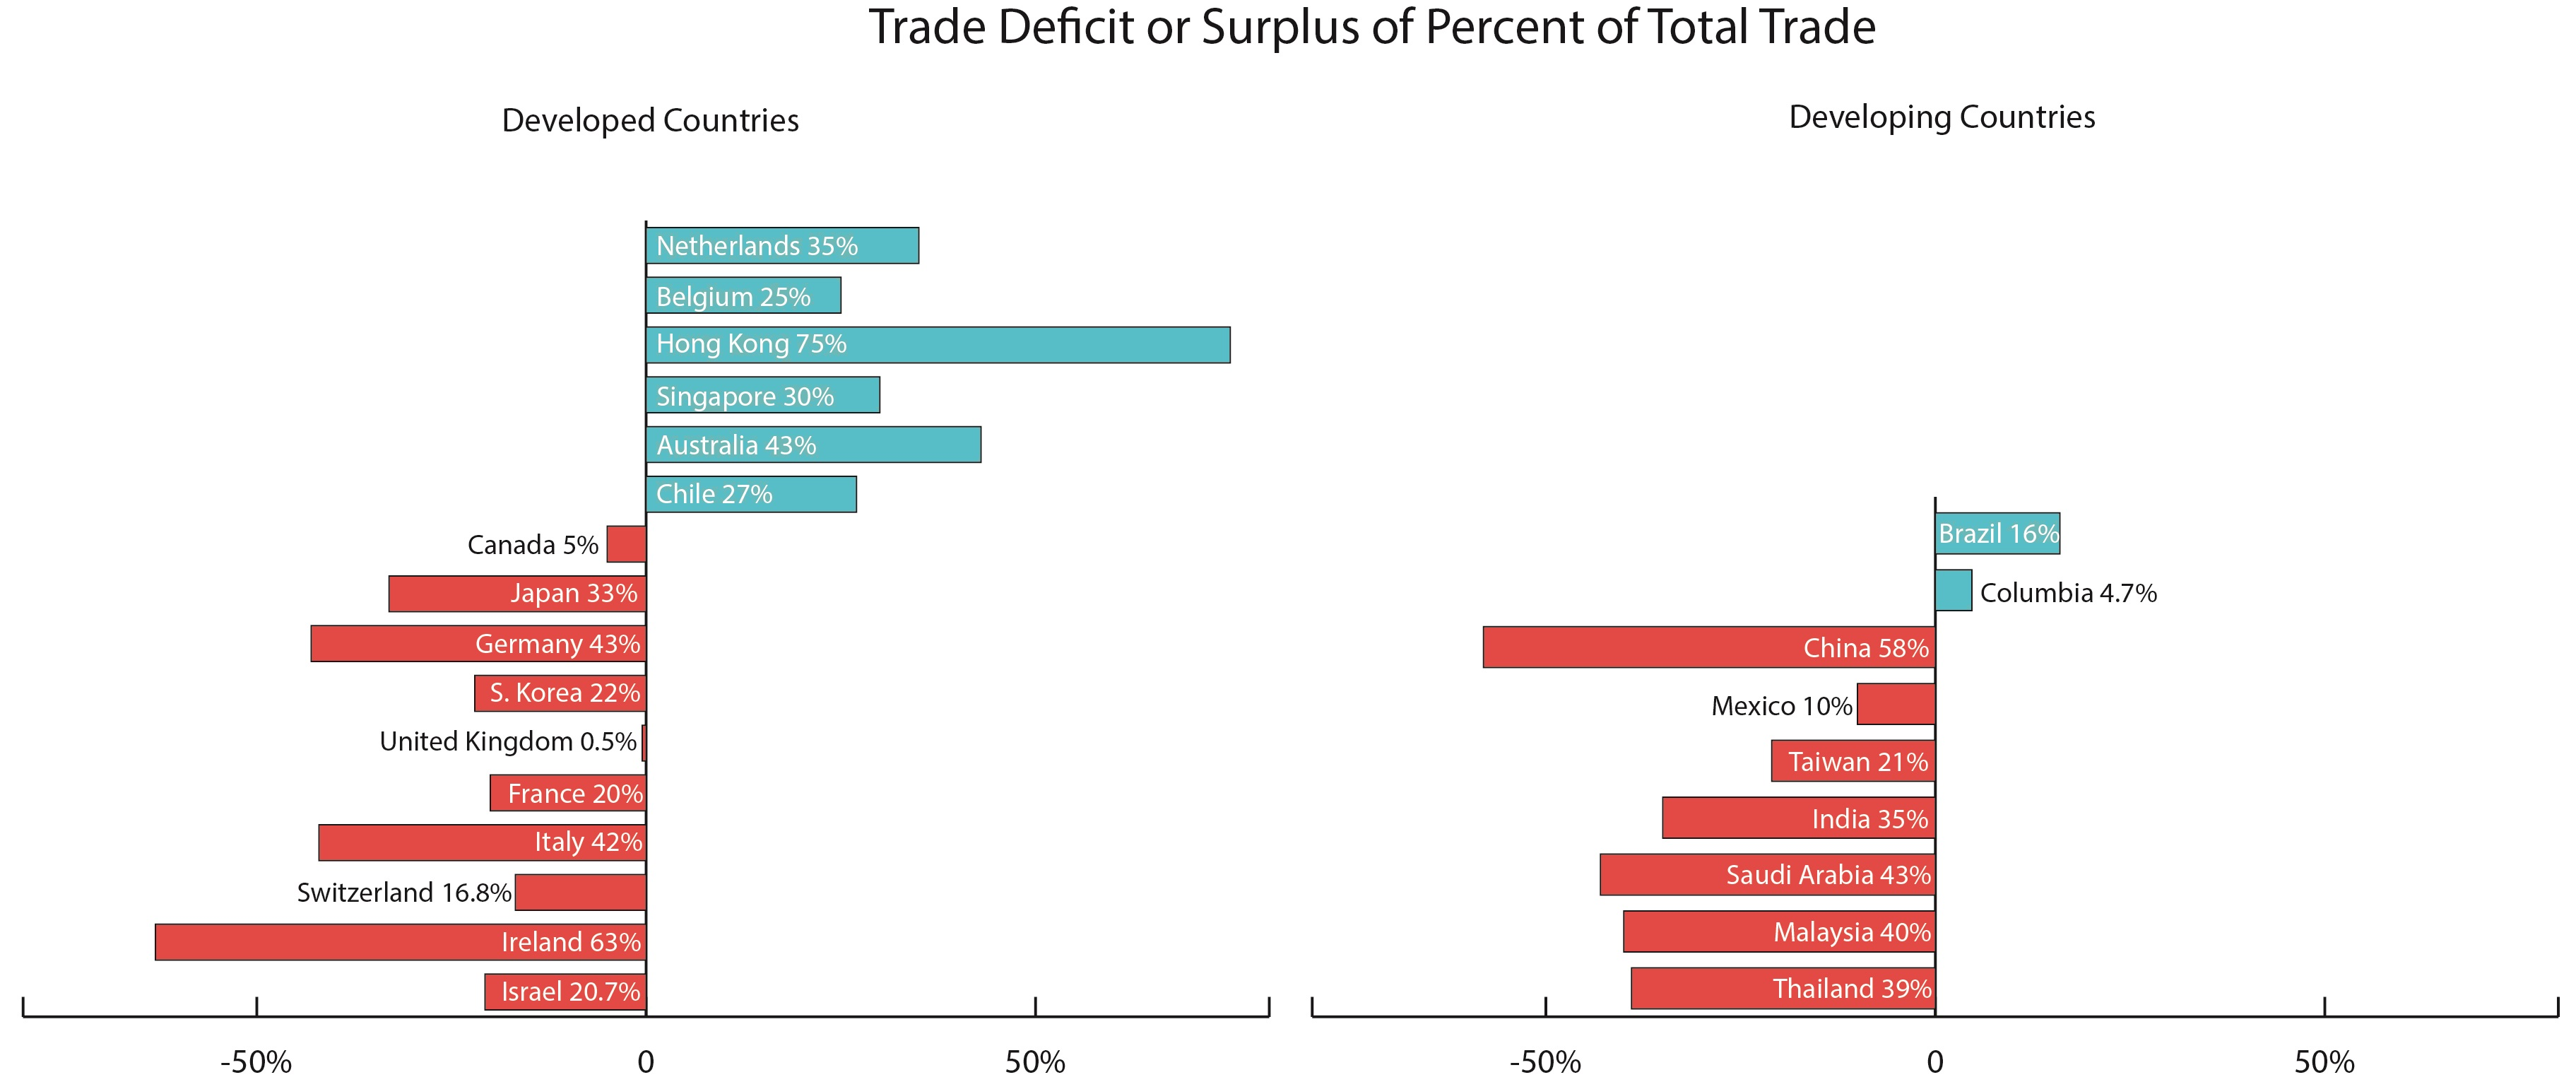 chart of top 20 US trade partners organized by deficit and surplus as a percent of total trade